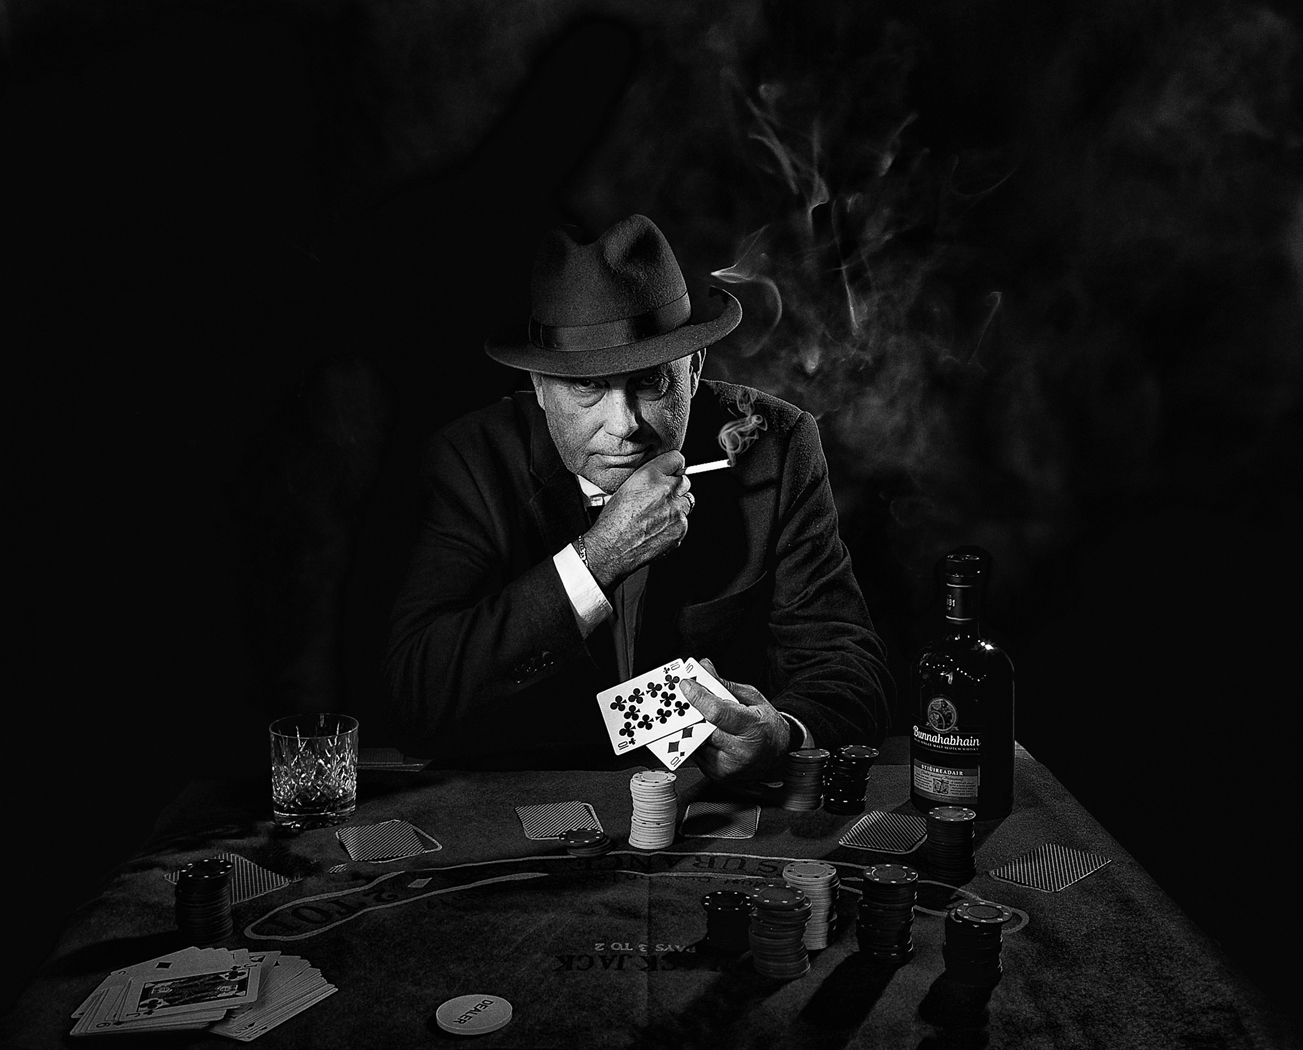 2nd Place - The Poker Player by Tess Salmon LRPS, CPAGB, BPE1